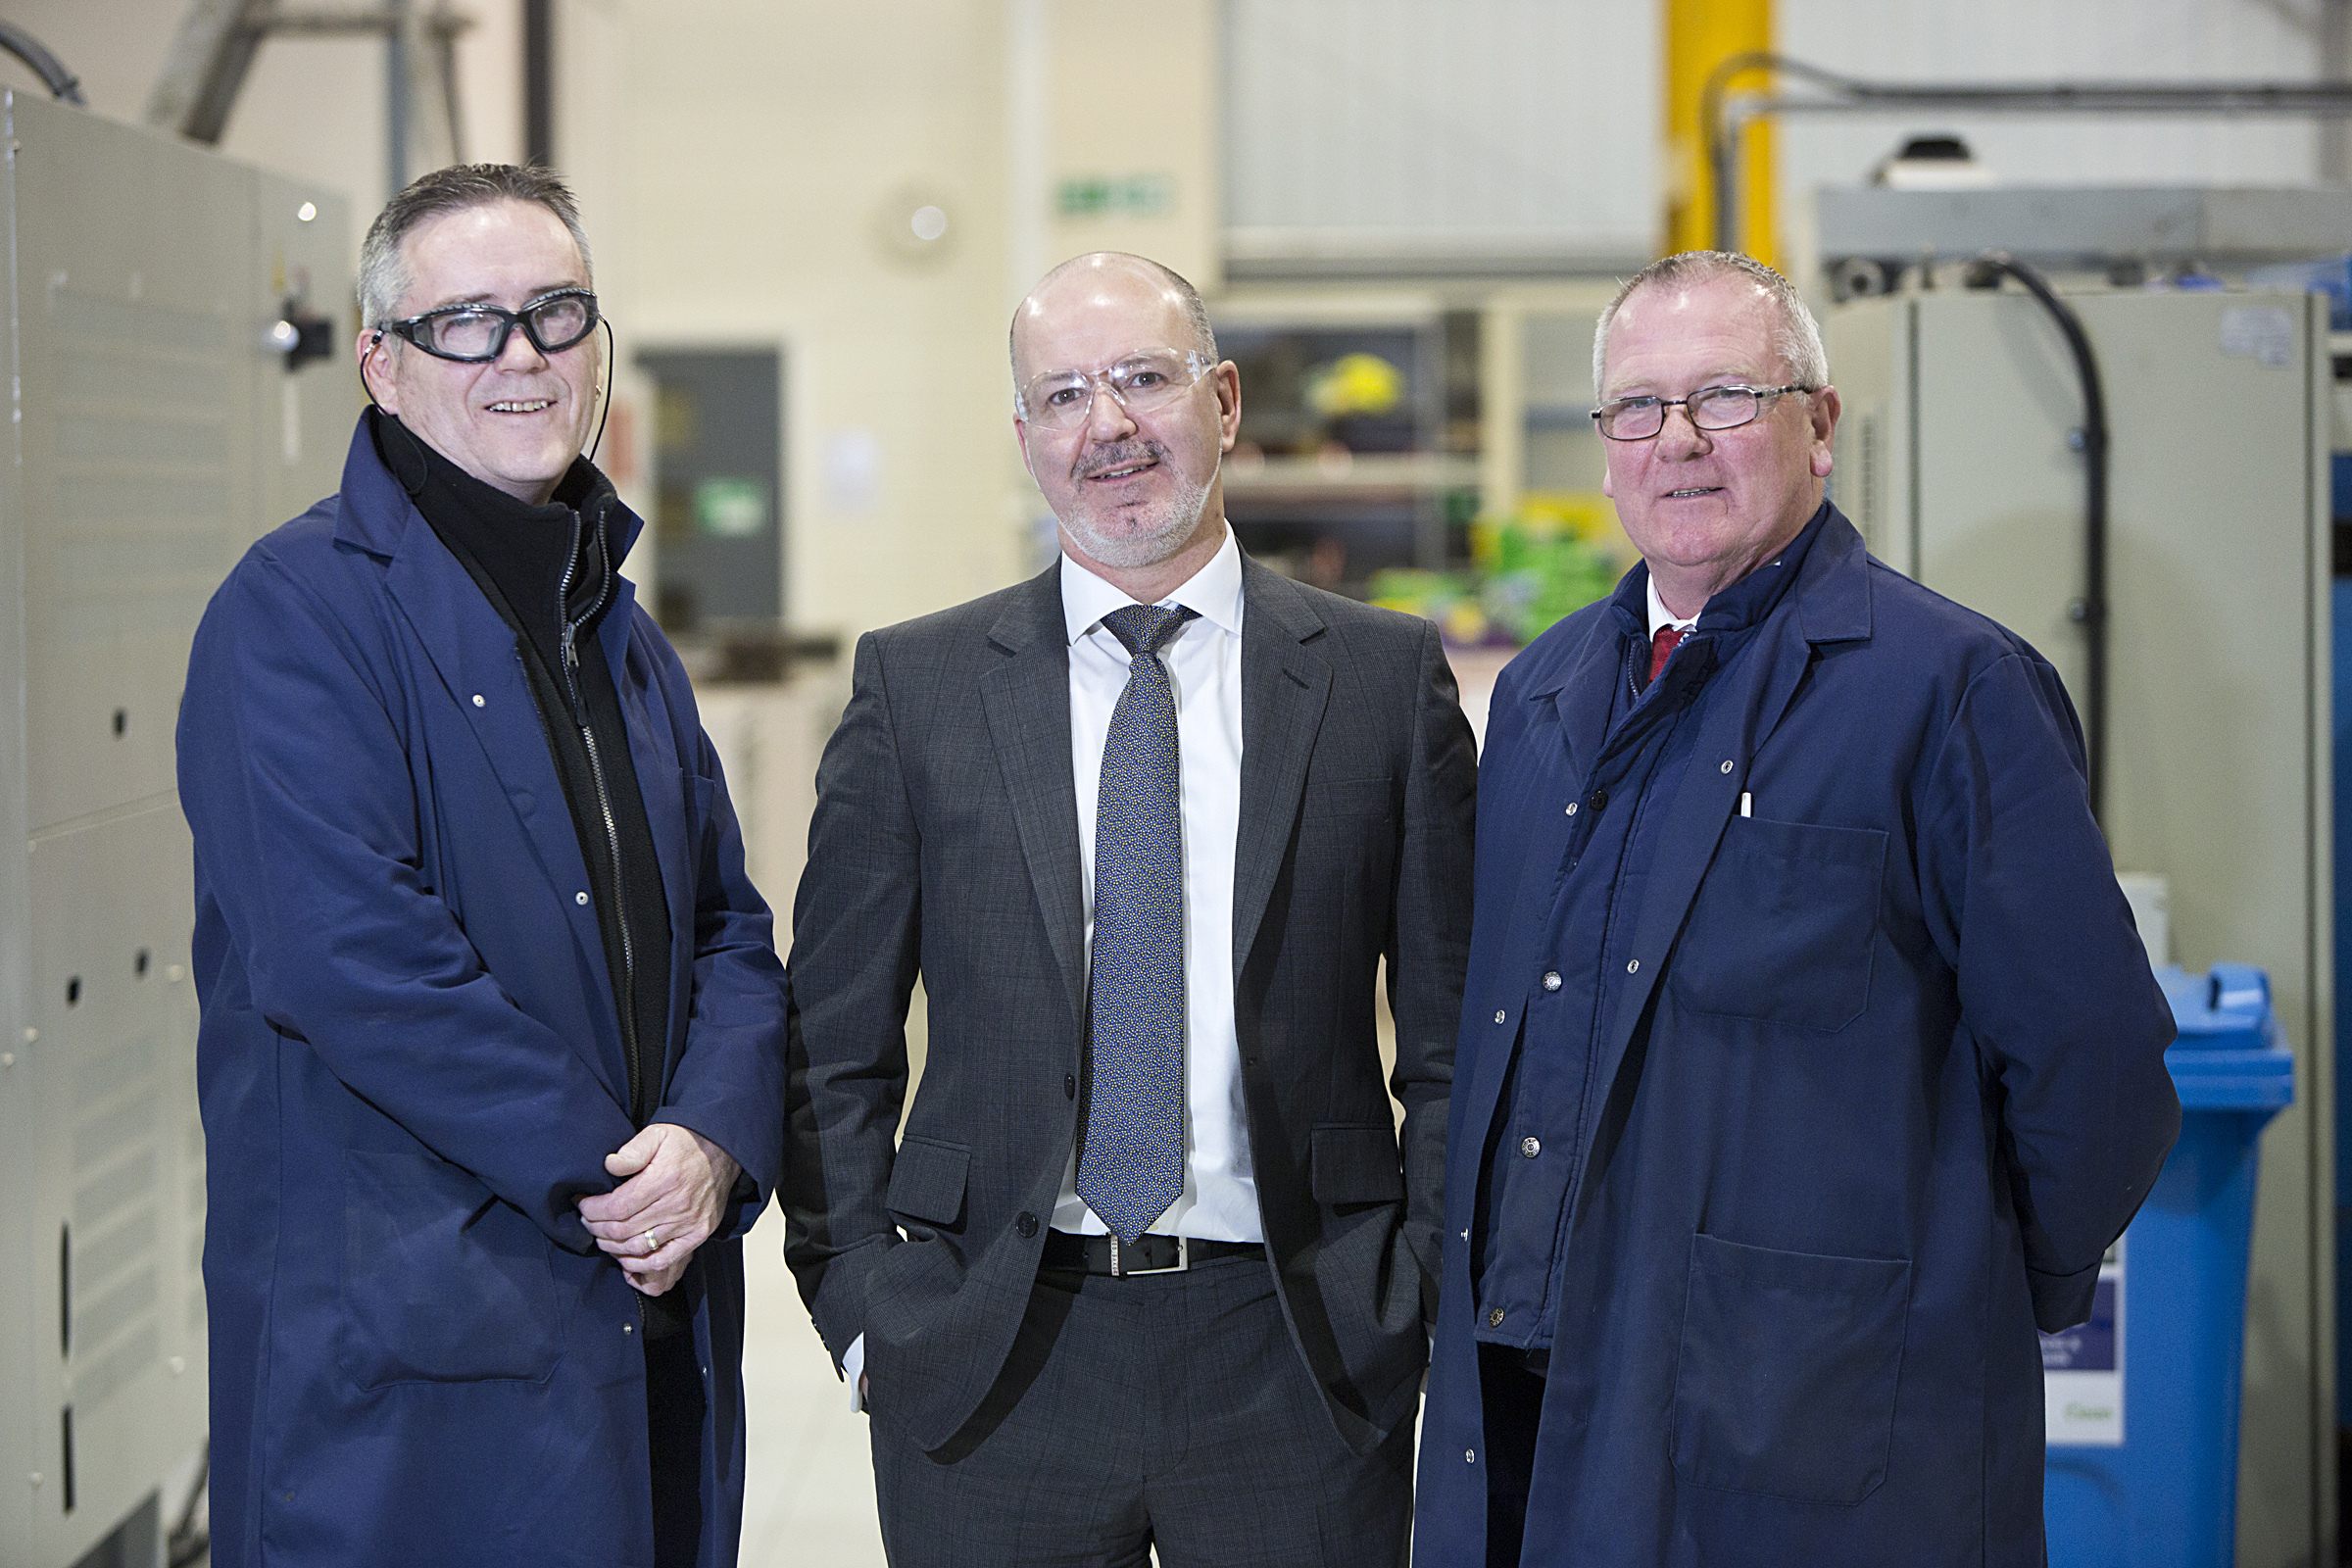 L-R: Jim McBride, Manufacturing Supervisor of Electronics and Microwave divisions, Jim Davidson, CEO of Albacom and Ronnie McKenzie, Surface Engineering & Machining Supervisor.